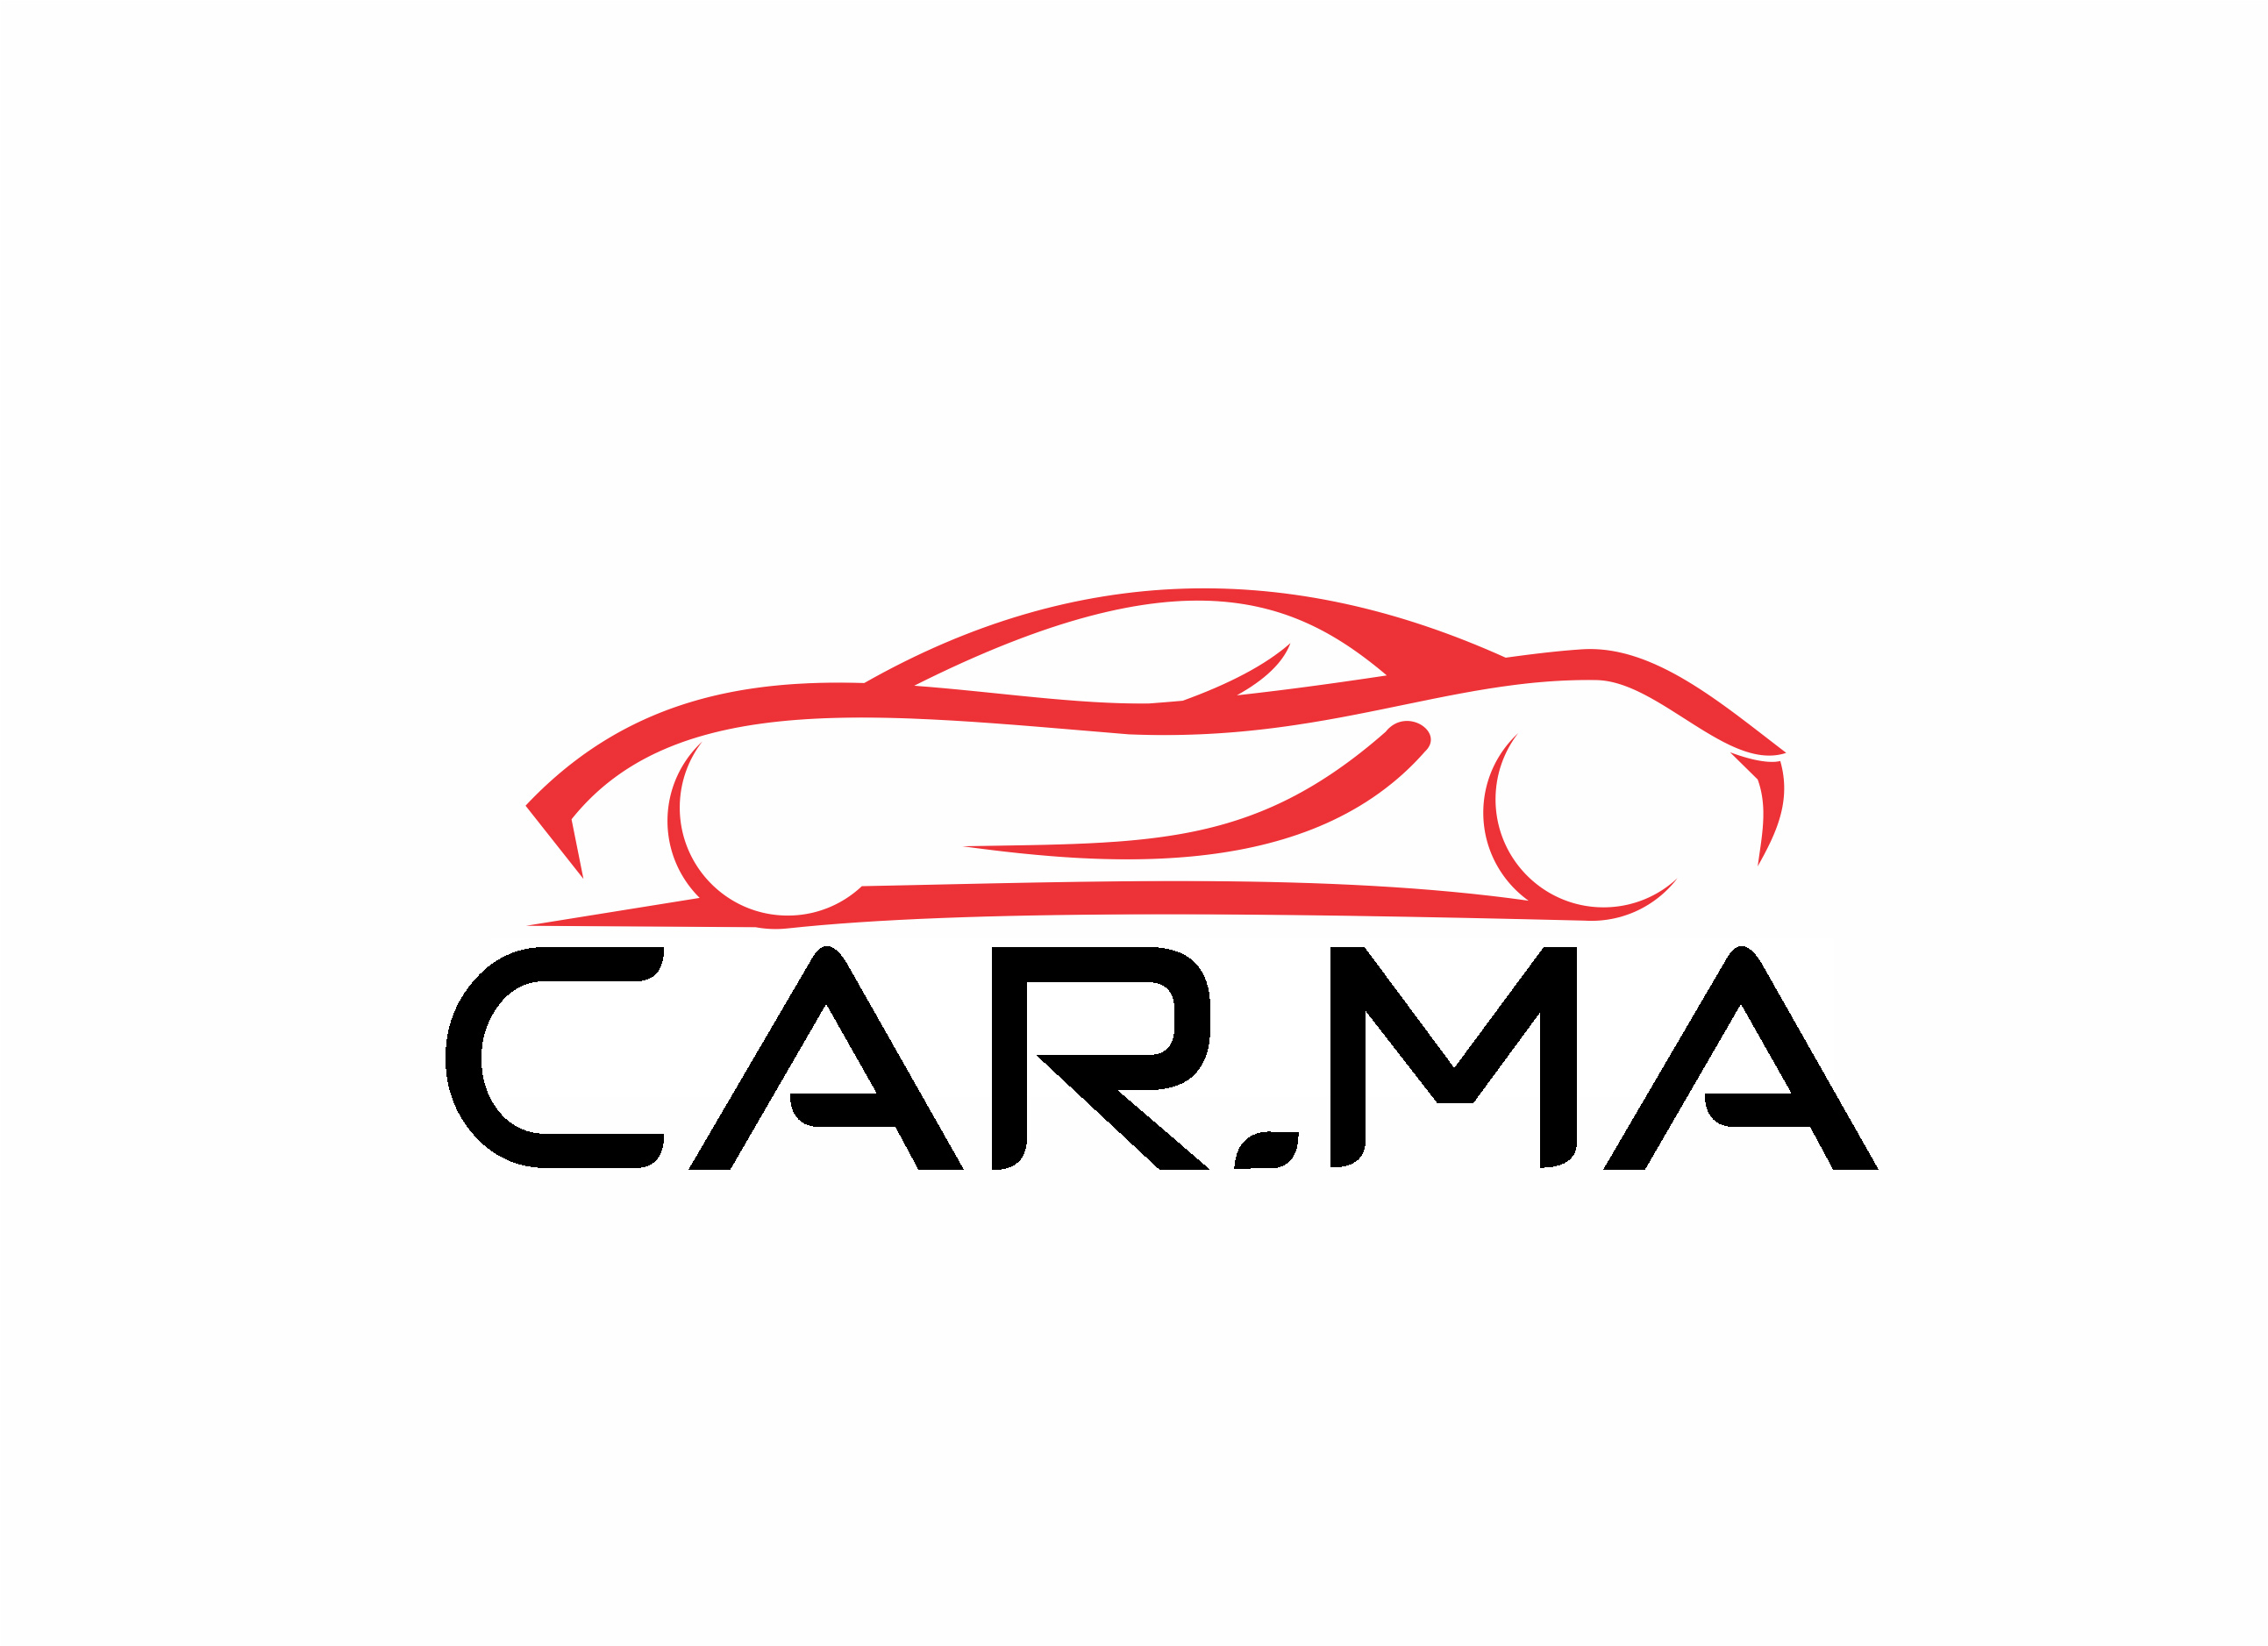 Logo Design by Shailesh Sharma - Entry No. 116 in the Logo Design Contest New Logo Design for car.ma.